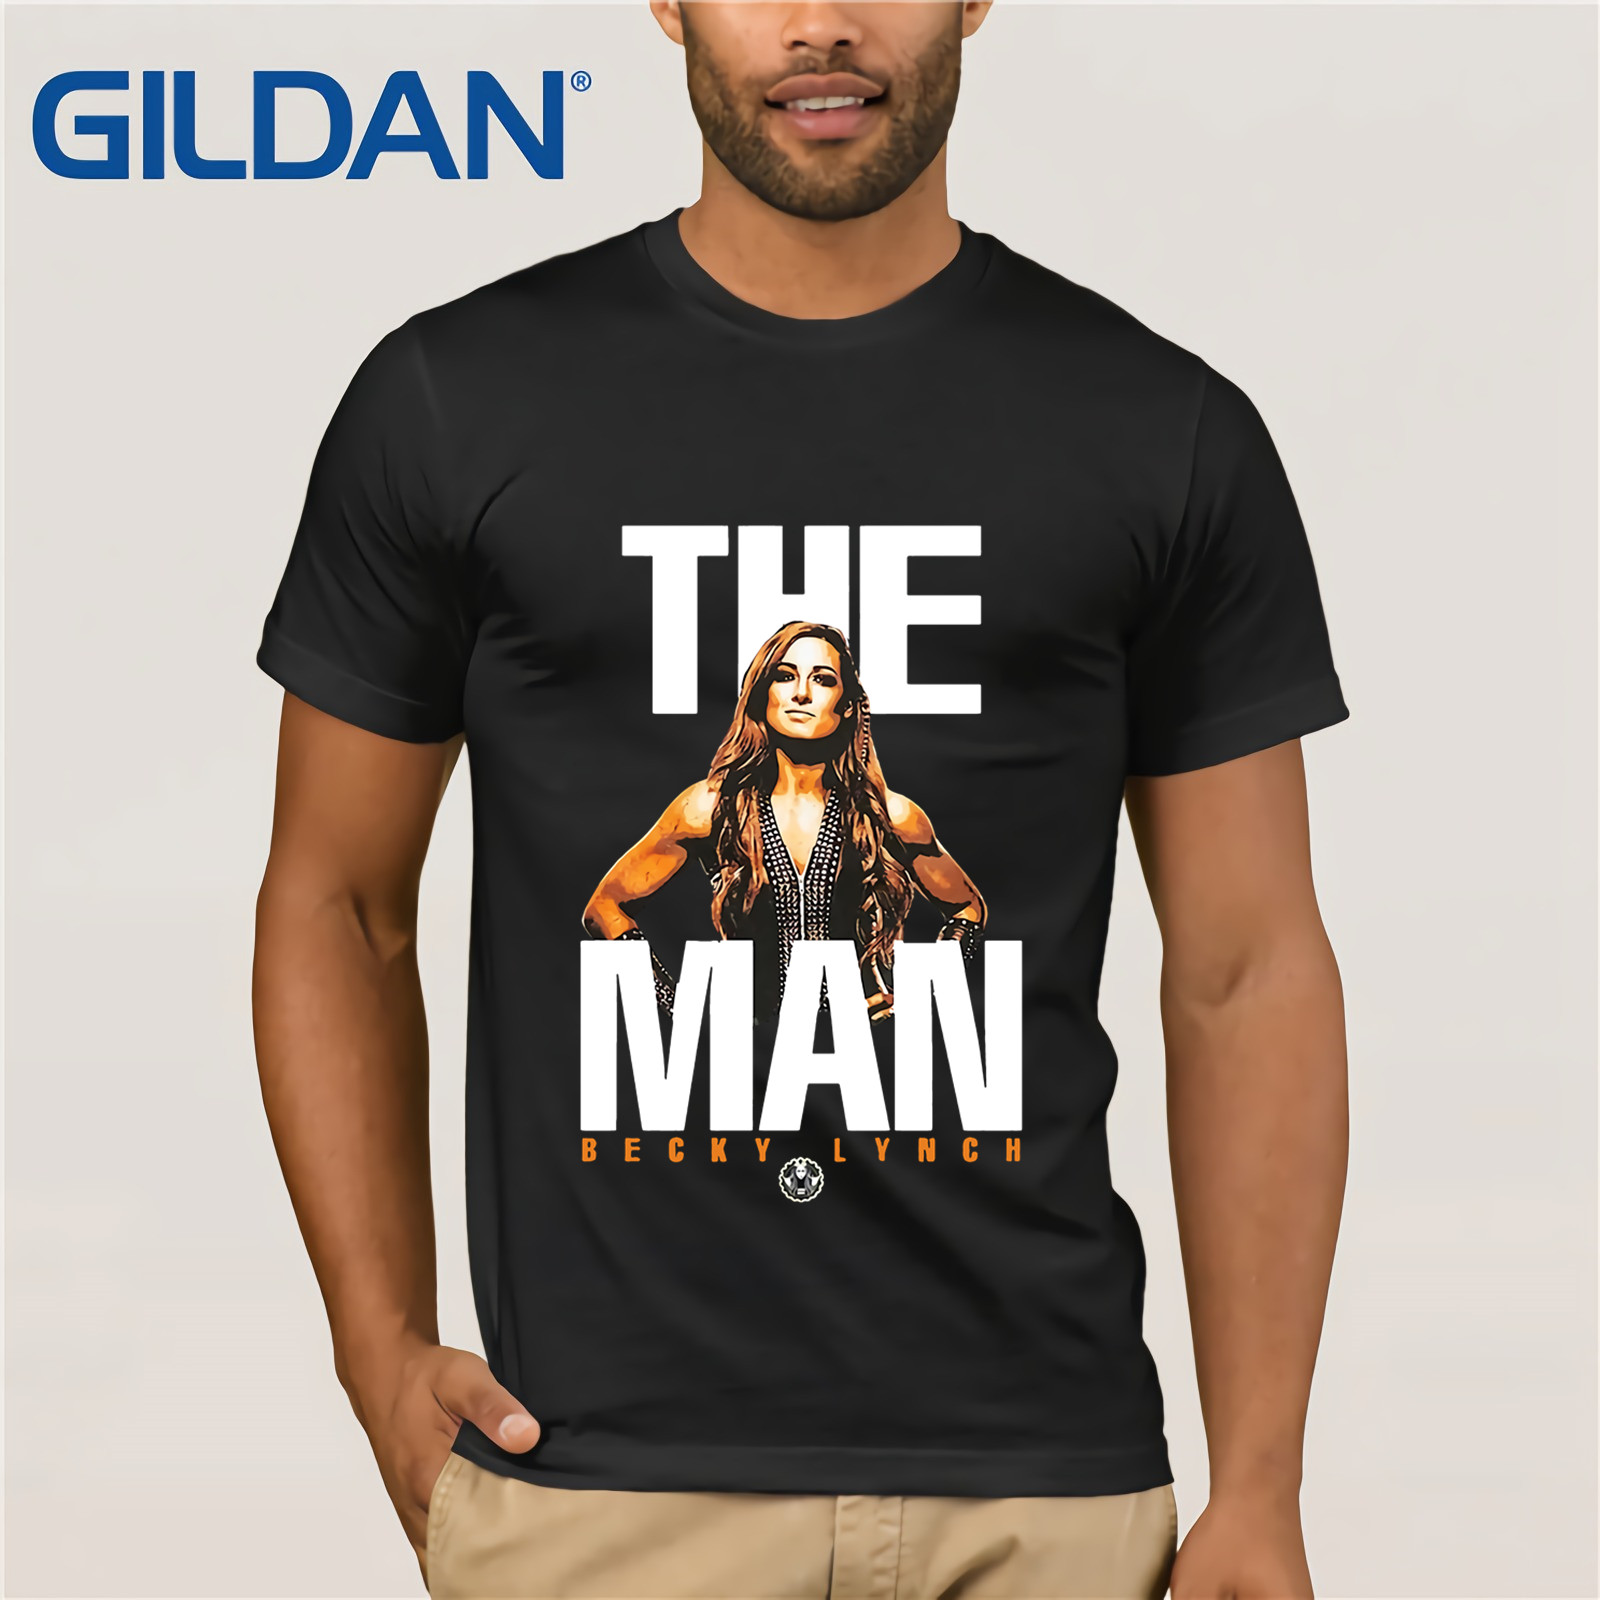 Mineral Wash The Man Becky Lynch 2019 Summer Men's Short Sleeve T-Shirt